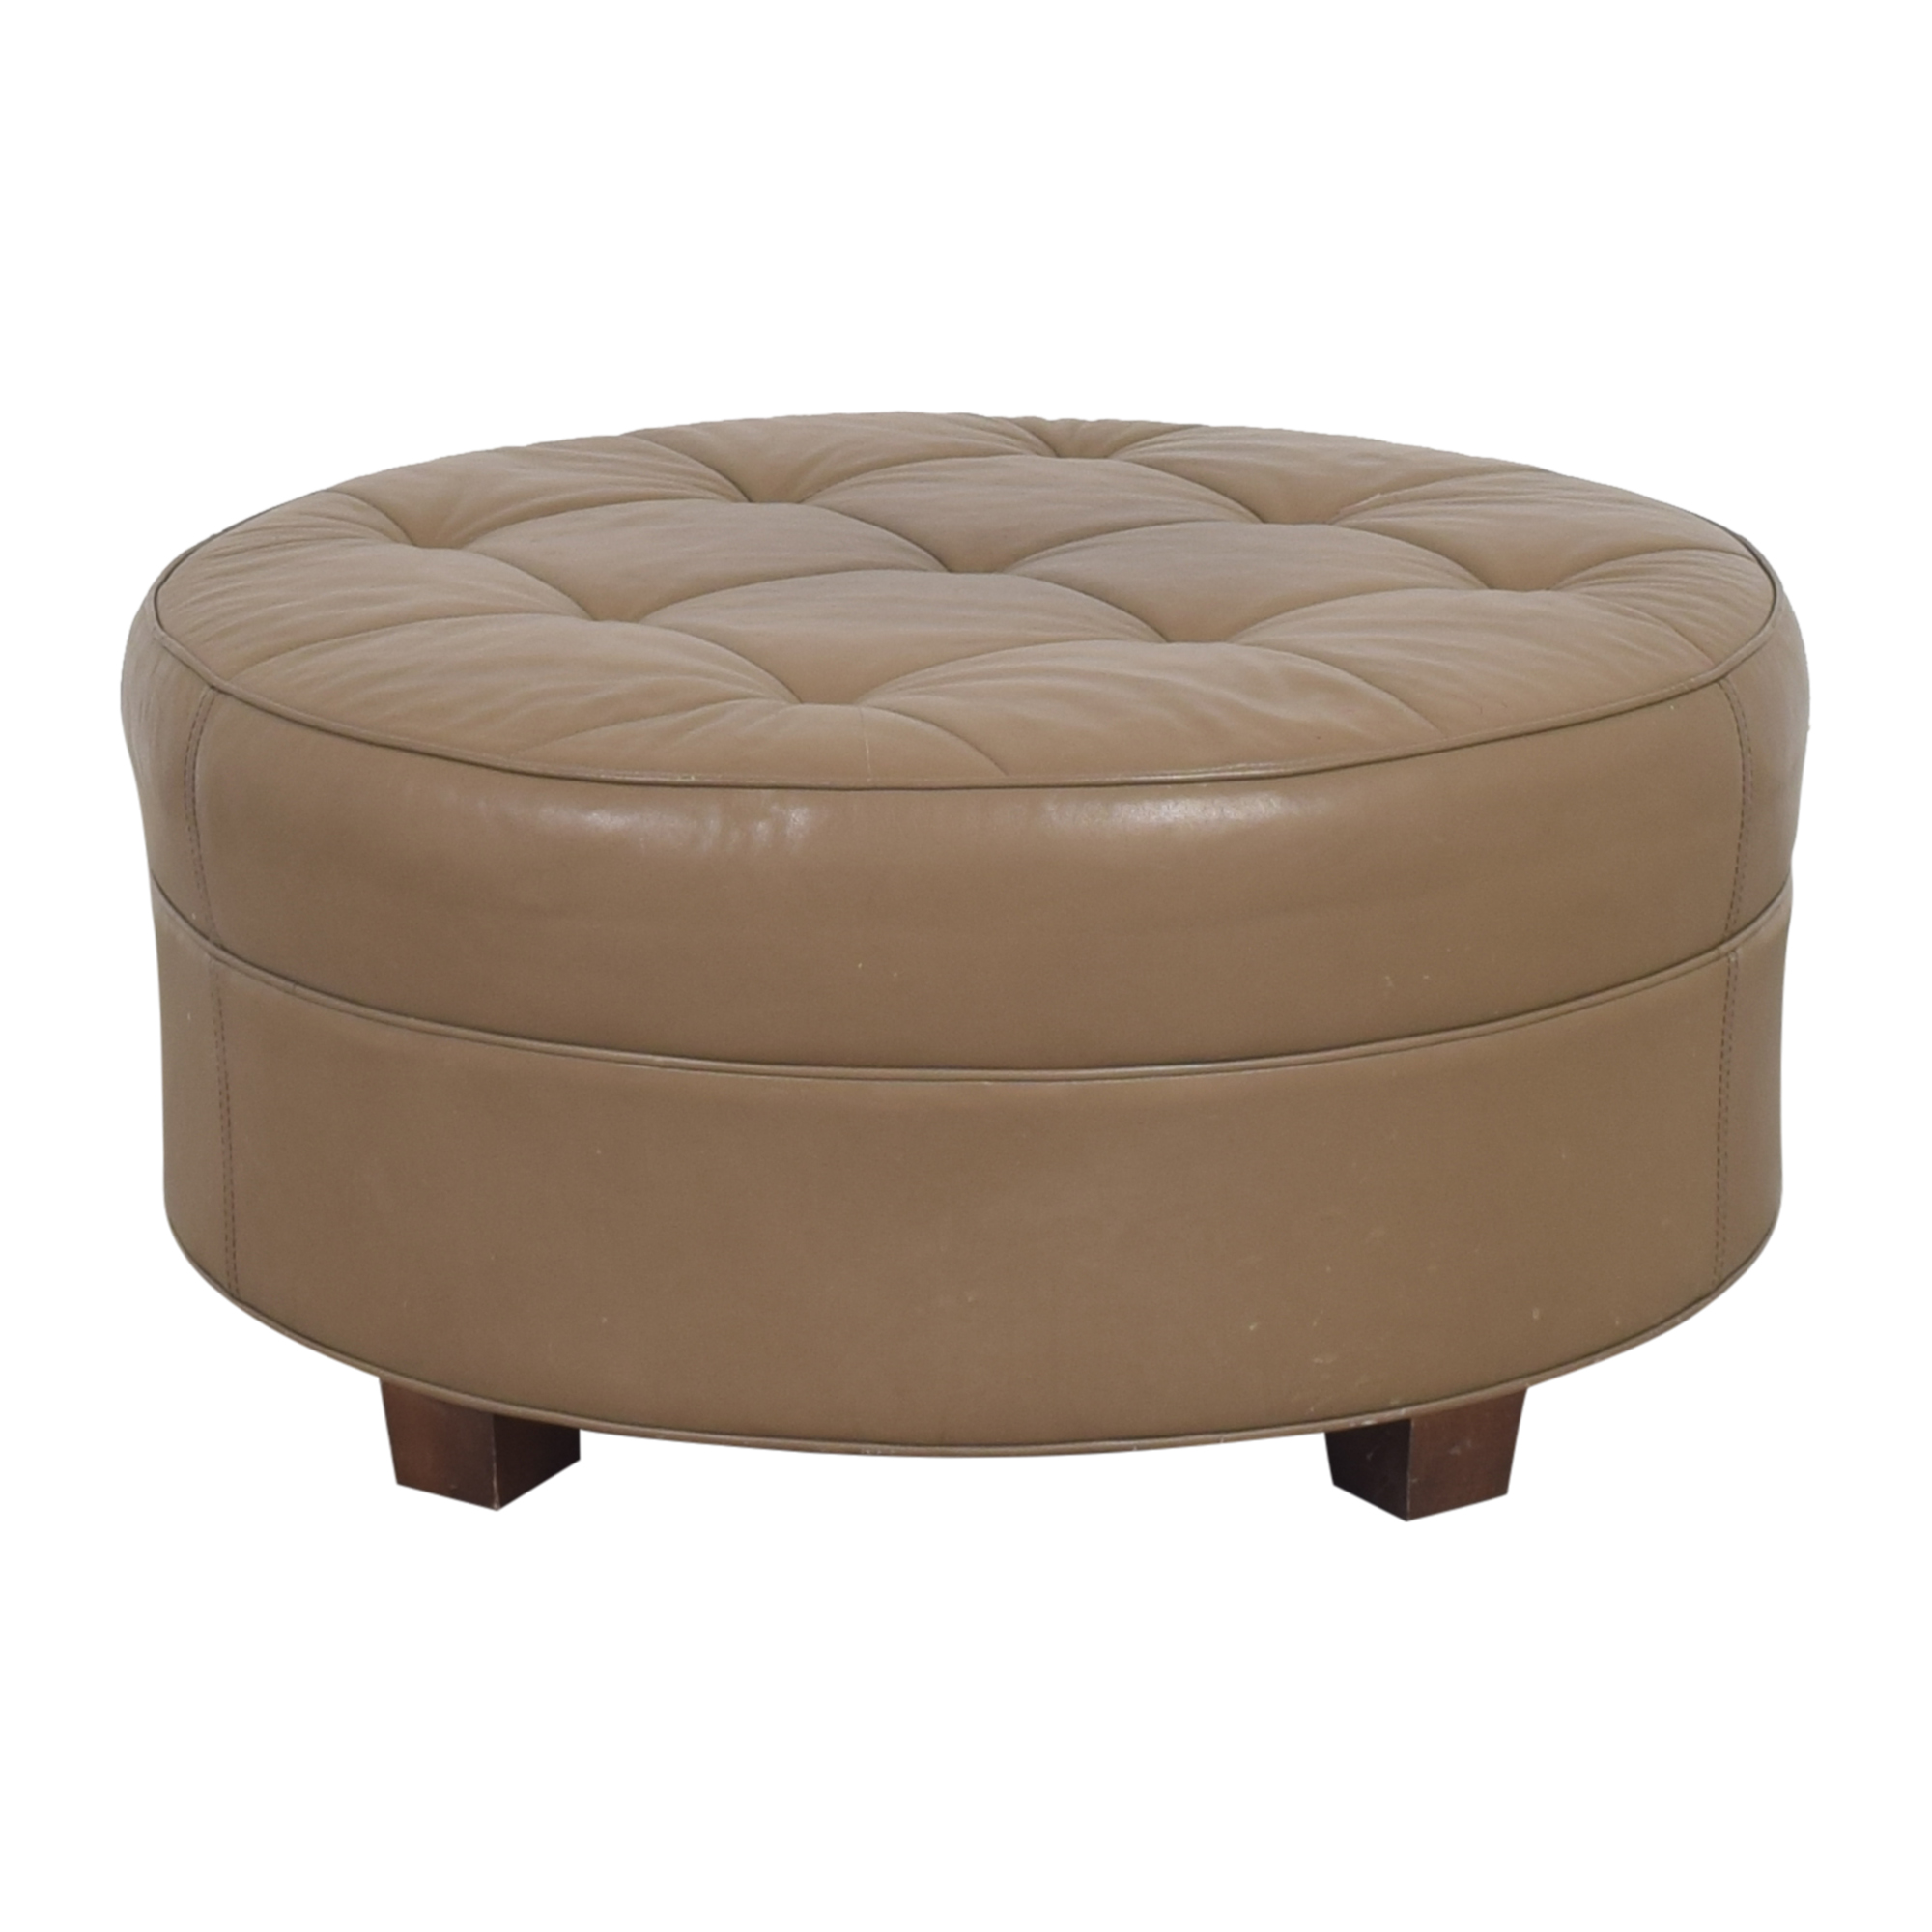 Stickley Furniture Stickley Furniture Round Tufted Ottoman coupon